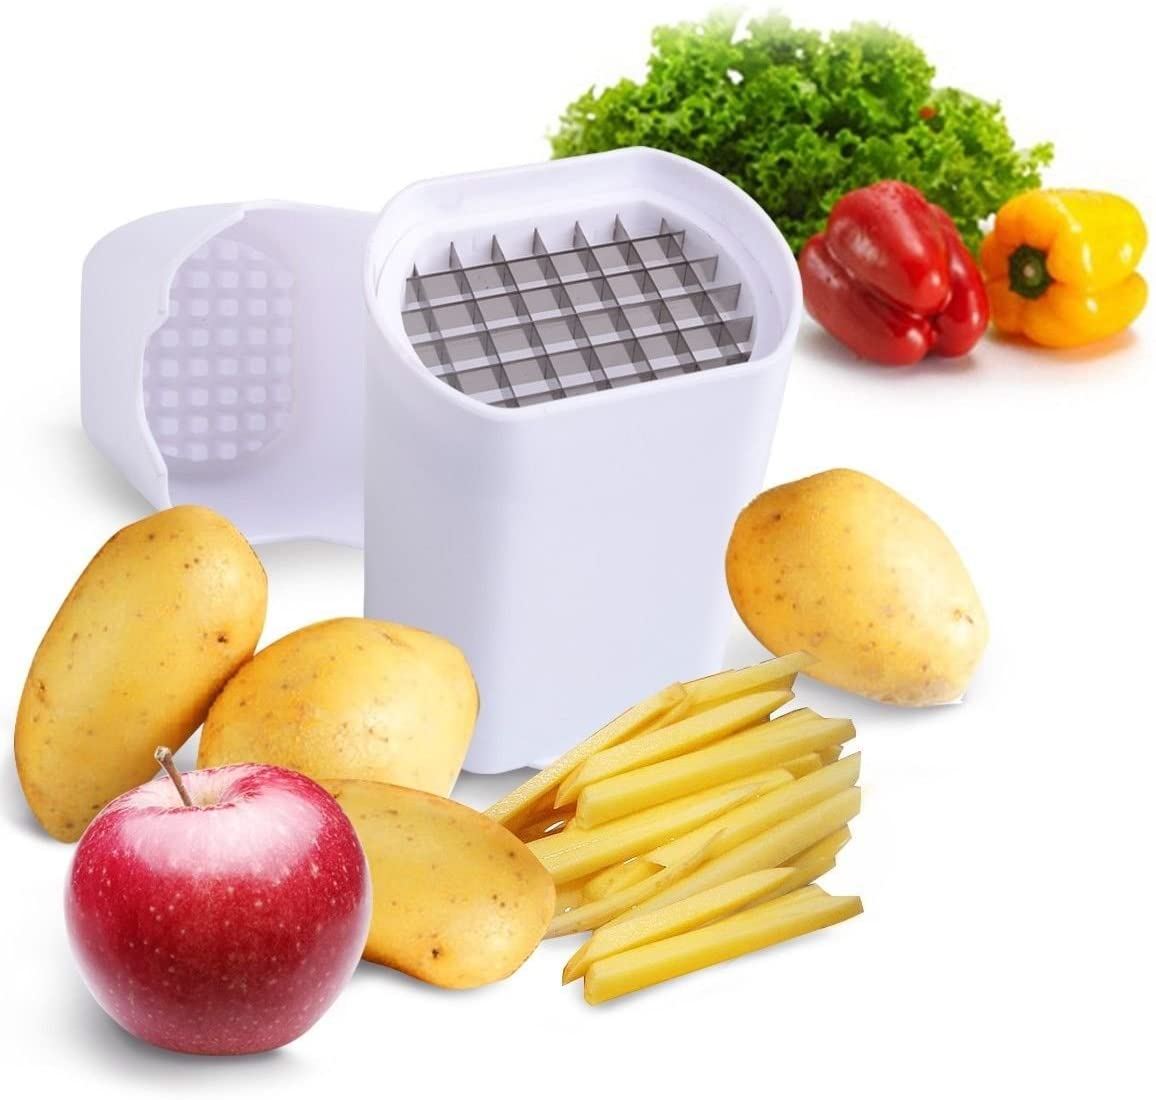 Perfect Fries One Step Natural French Fry Cutter Vegetable Fruit Durable Potato Make fries from almost any vegetable. Very easy to clean as it is dishwasher safe.